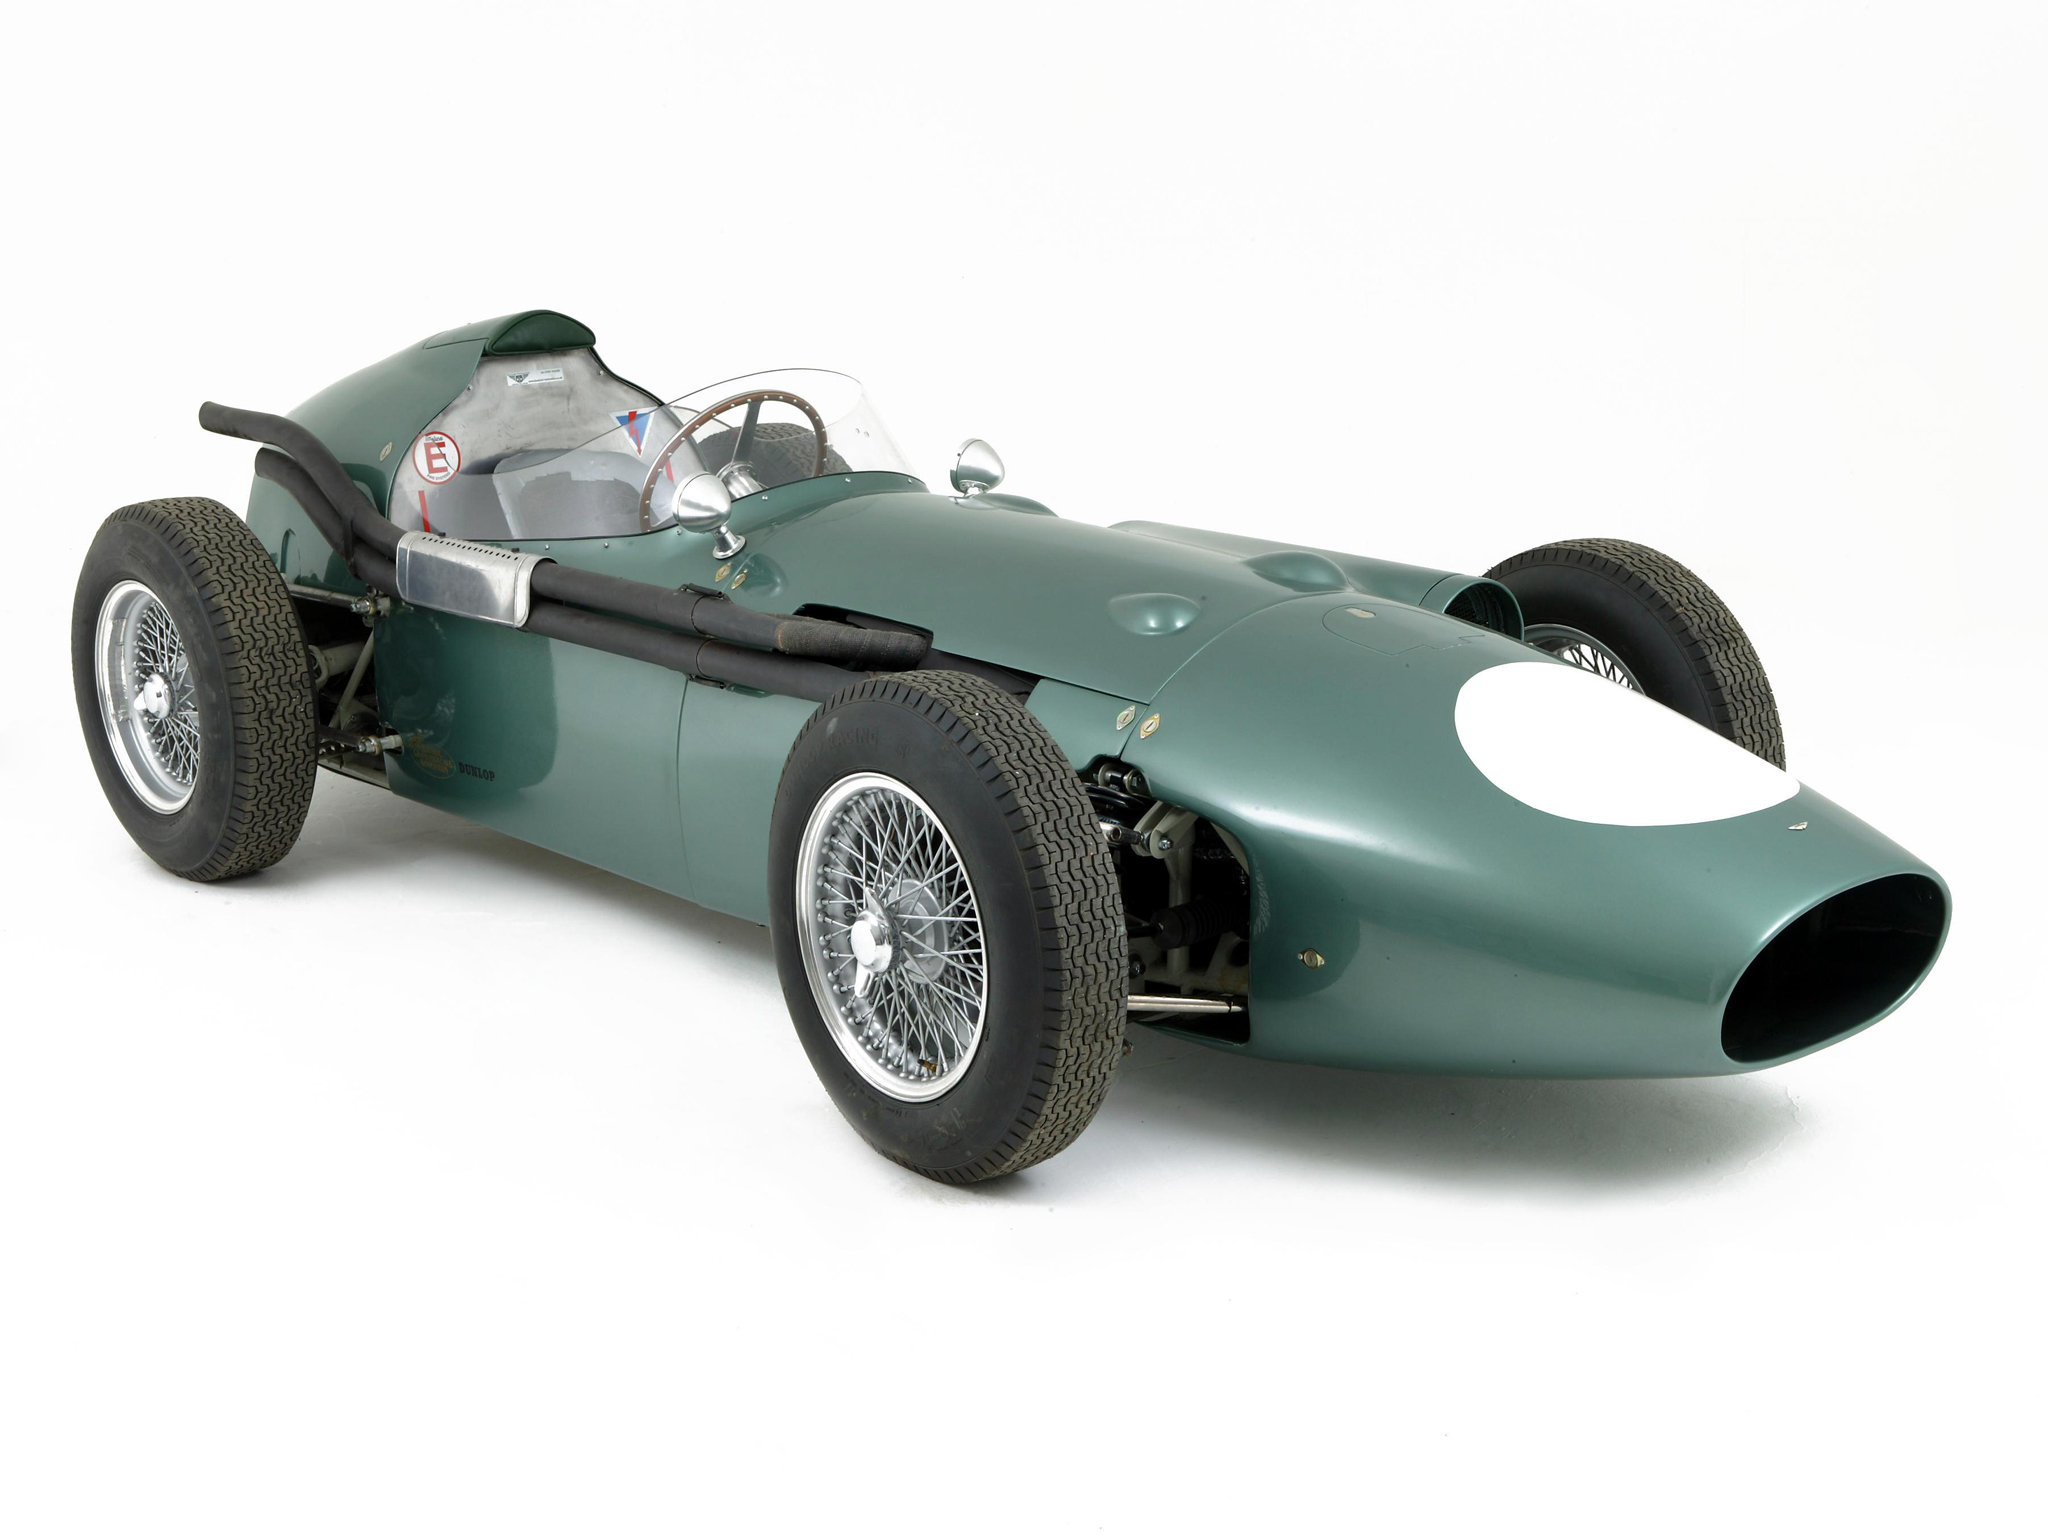 Aston martin dbr4 photo - 3